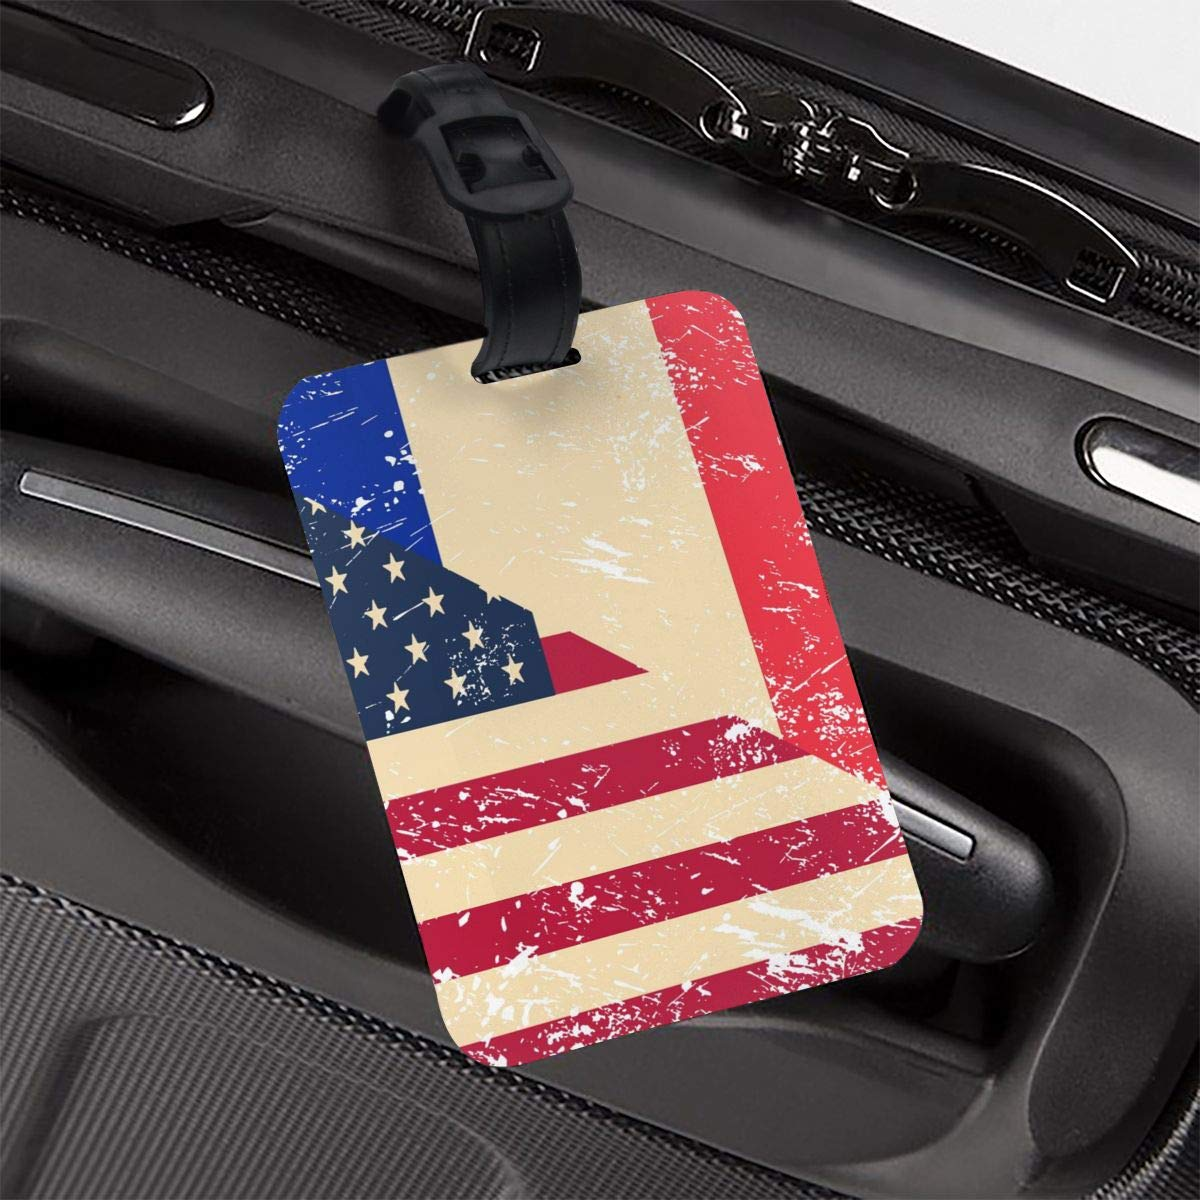 NB UUD American and France Retro Flag Travel Luggage Tag Cool Employees Card Luggage Tag Holders Travel ID Identification Labels for Baggage Suitcases Bags